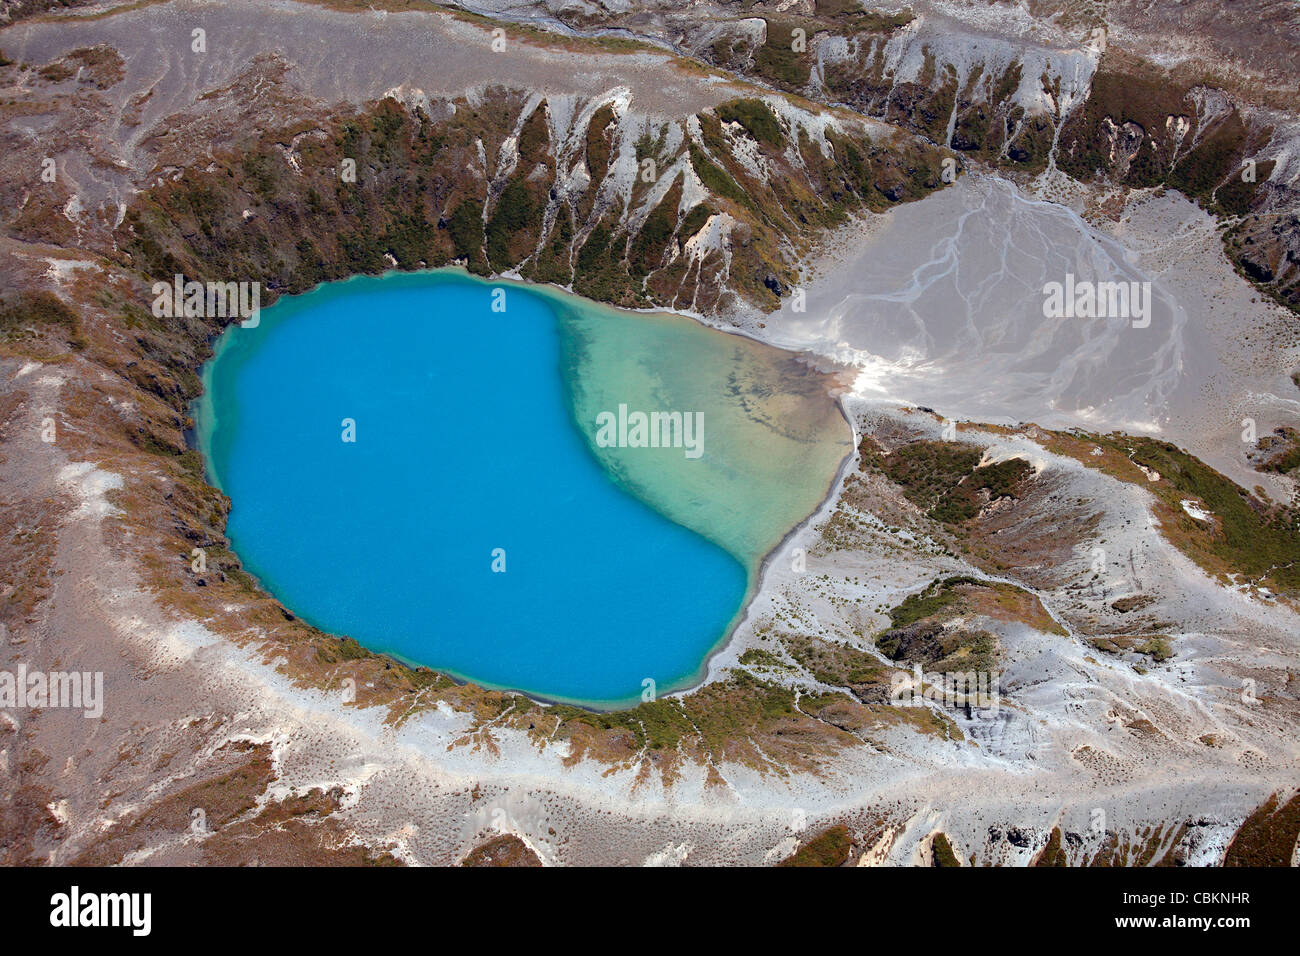 November 2007 - Aerial view of crater lake in Tongariro volcanic complex, New Zealand. - Stock Image